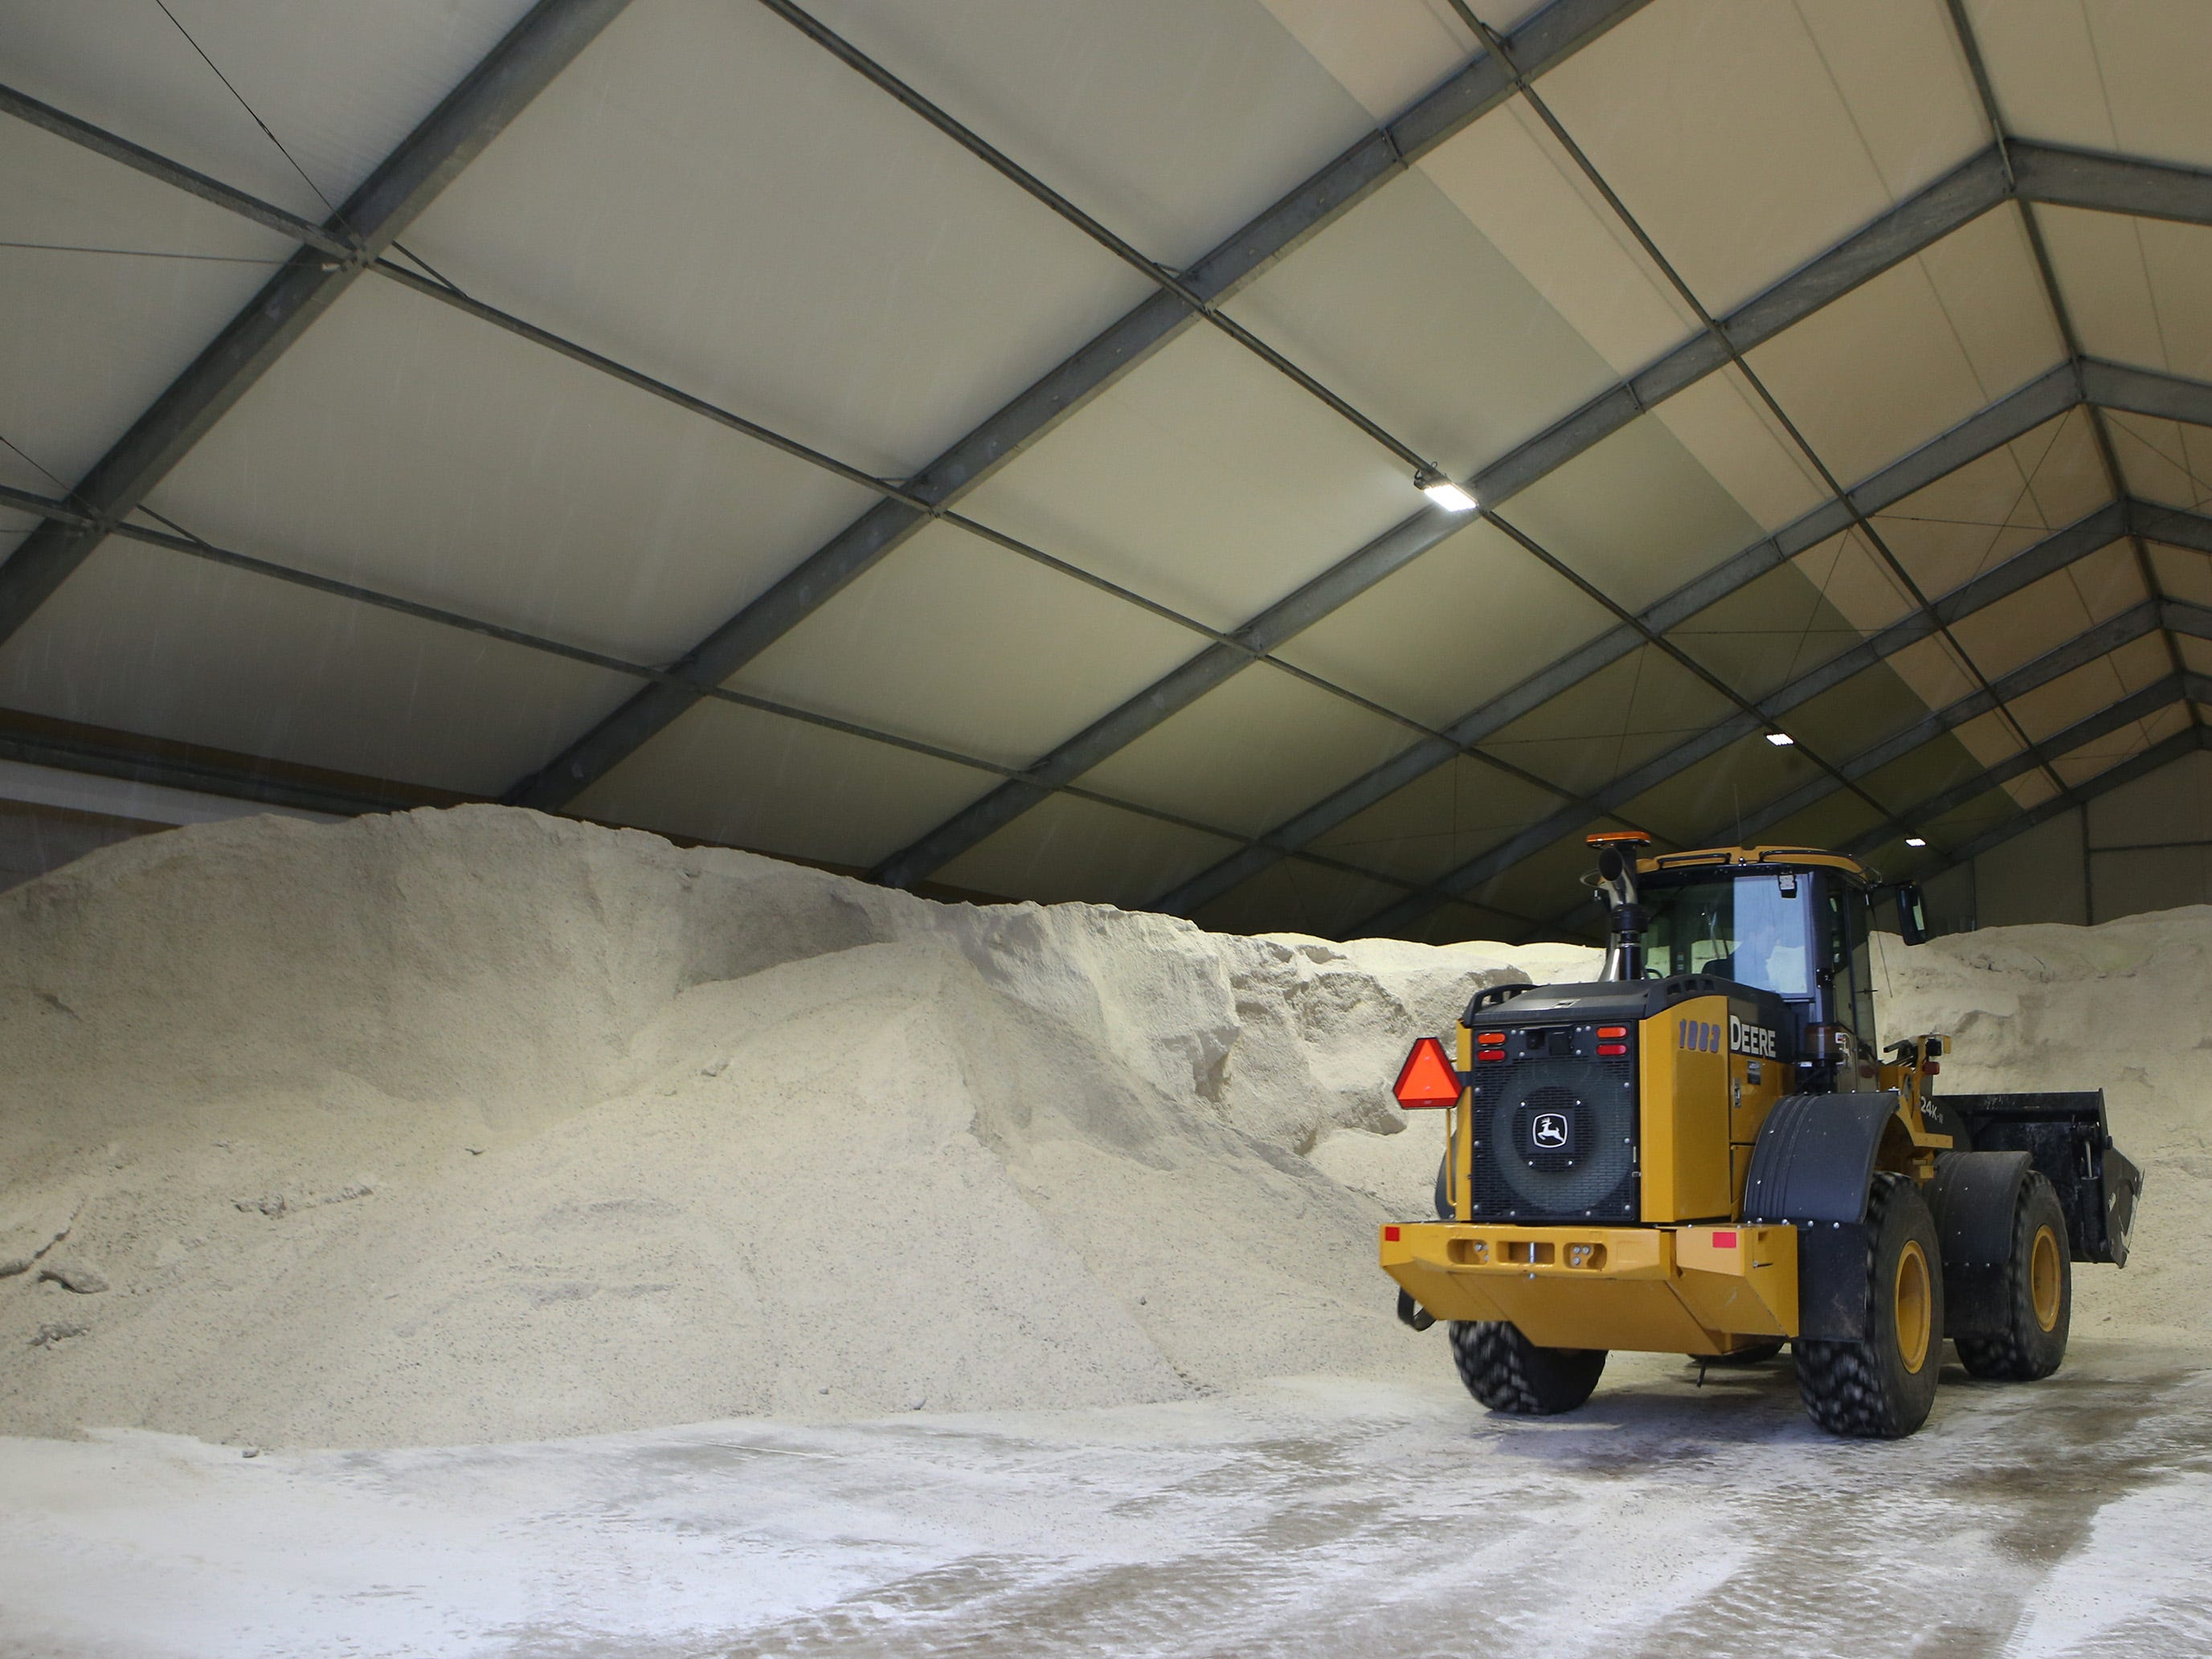 Road salt is scooped from an enclosed storage area at the Public Works Yard on Good Home Road as snow from the Jan. 22 snowstorm begins to fall. A typical eight ton salt load lasts about one hour of driving one of the Village's snow clearing and salting routes.